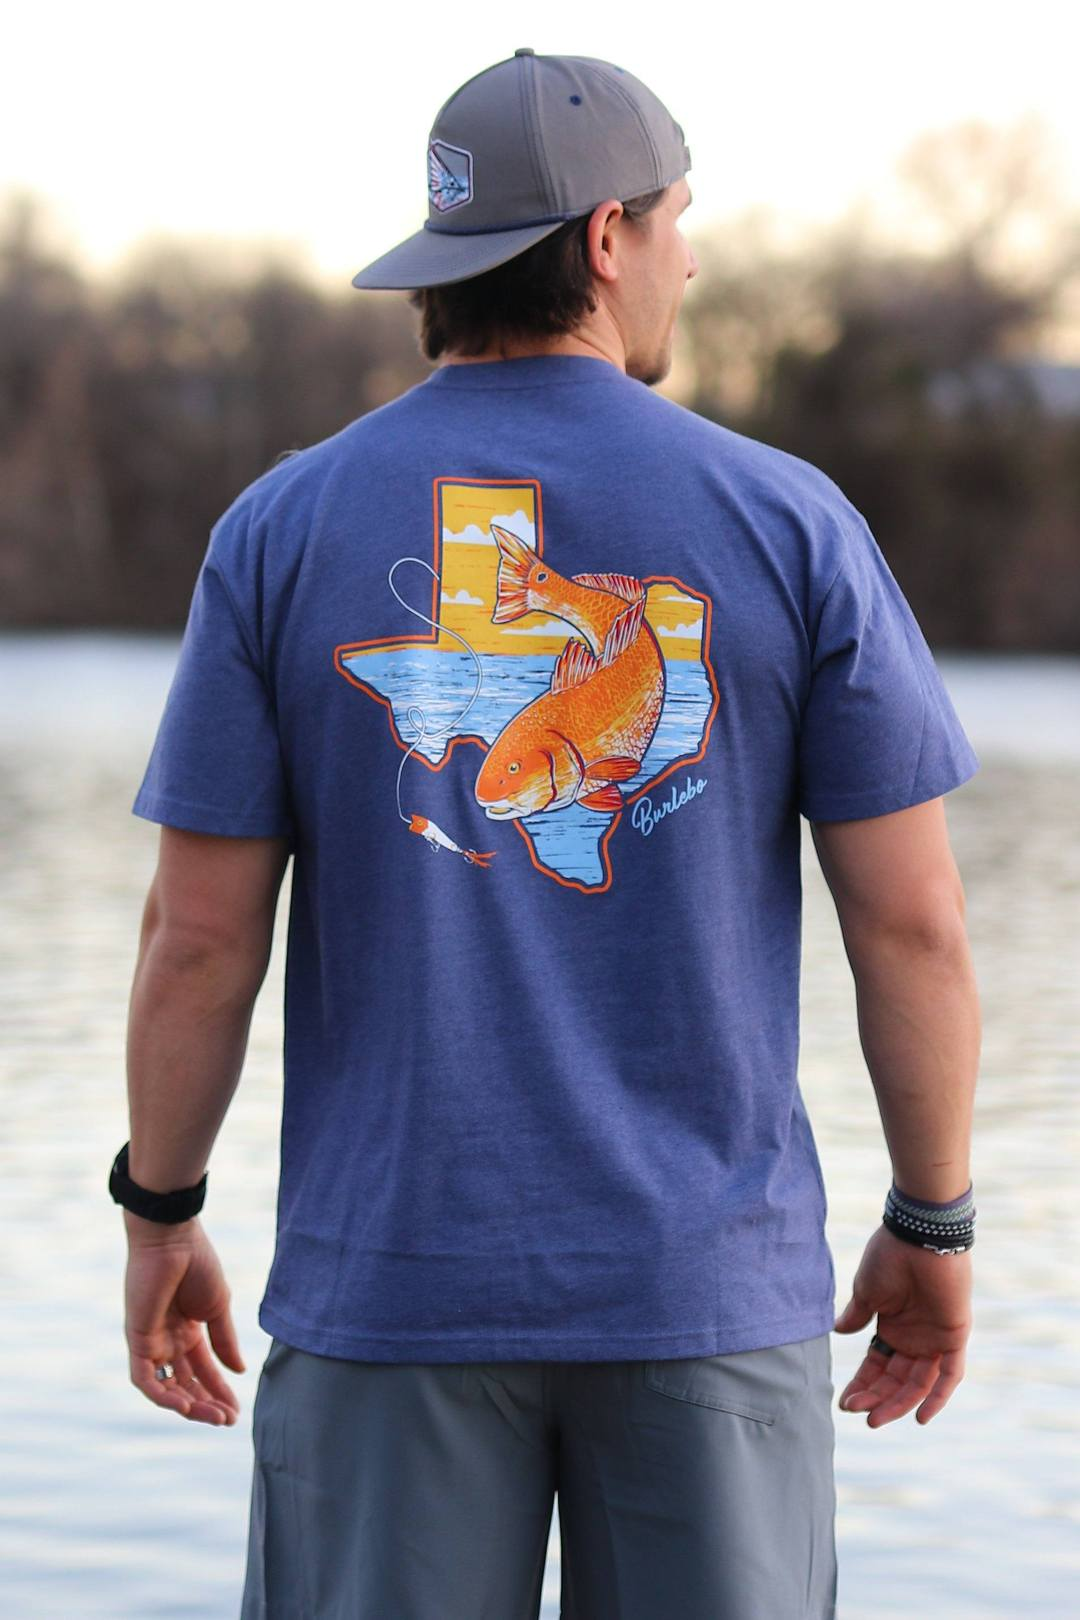 Burlebo T-Shirt - TX Red Fish